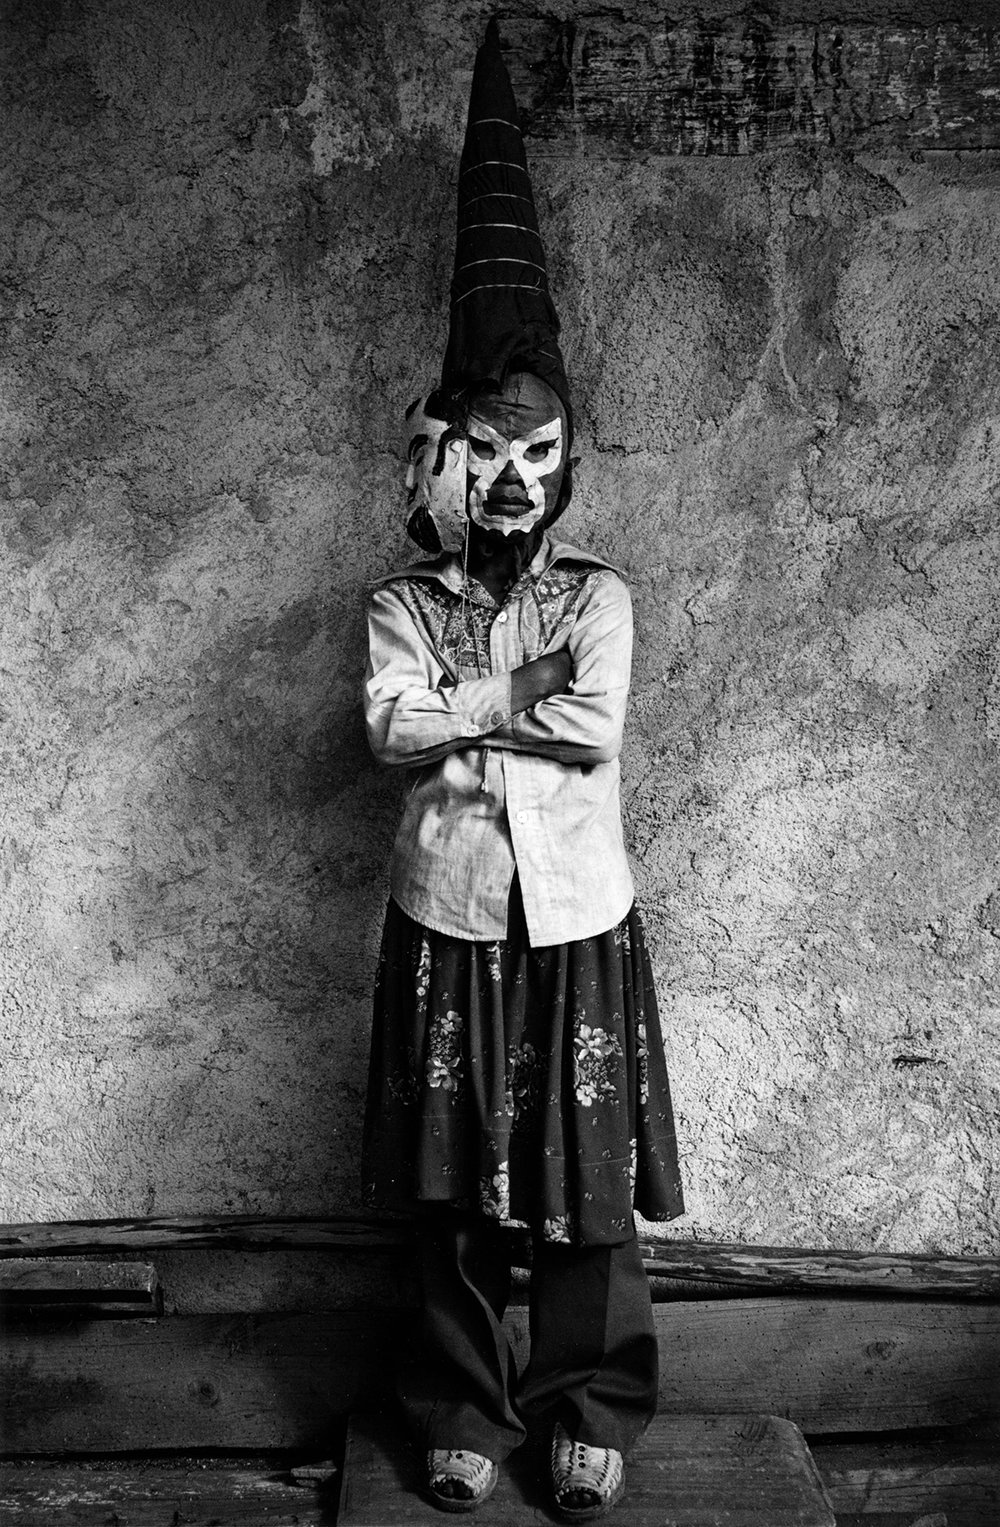 Graciela Iturbide  Jano,  Mexico, 1981 Sheet: 20 x 16 inches / Image: 17 x 12 inches Silver Gelatin Print Illustrated in:  Sueños De Papal , Fondo de Cultura Economica, 1985, page 31;  Graciela Iturbide: Images of The Spirit, Aperture , 1996, page 47